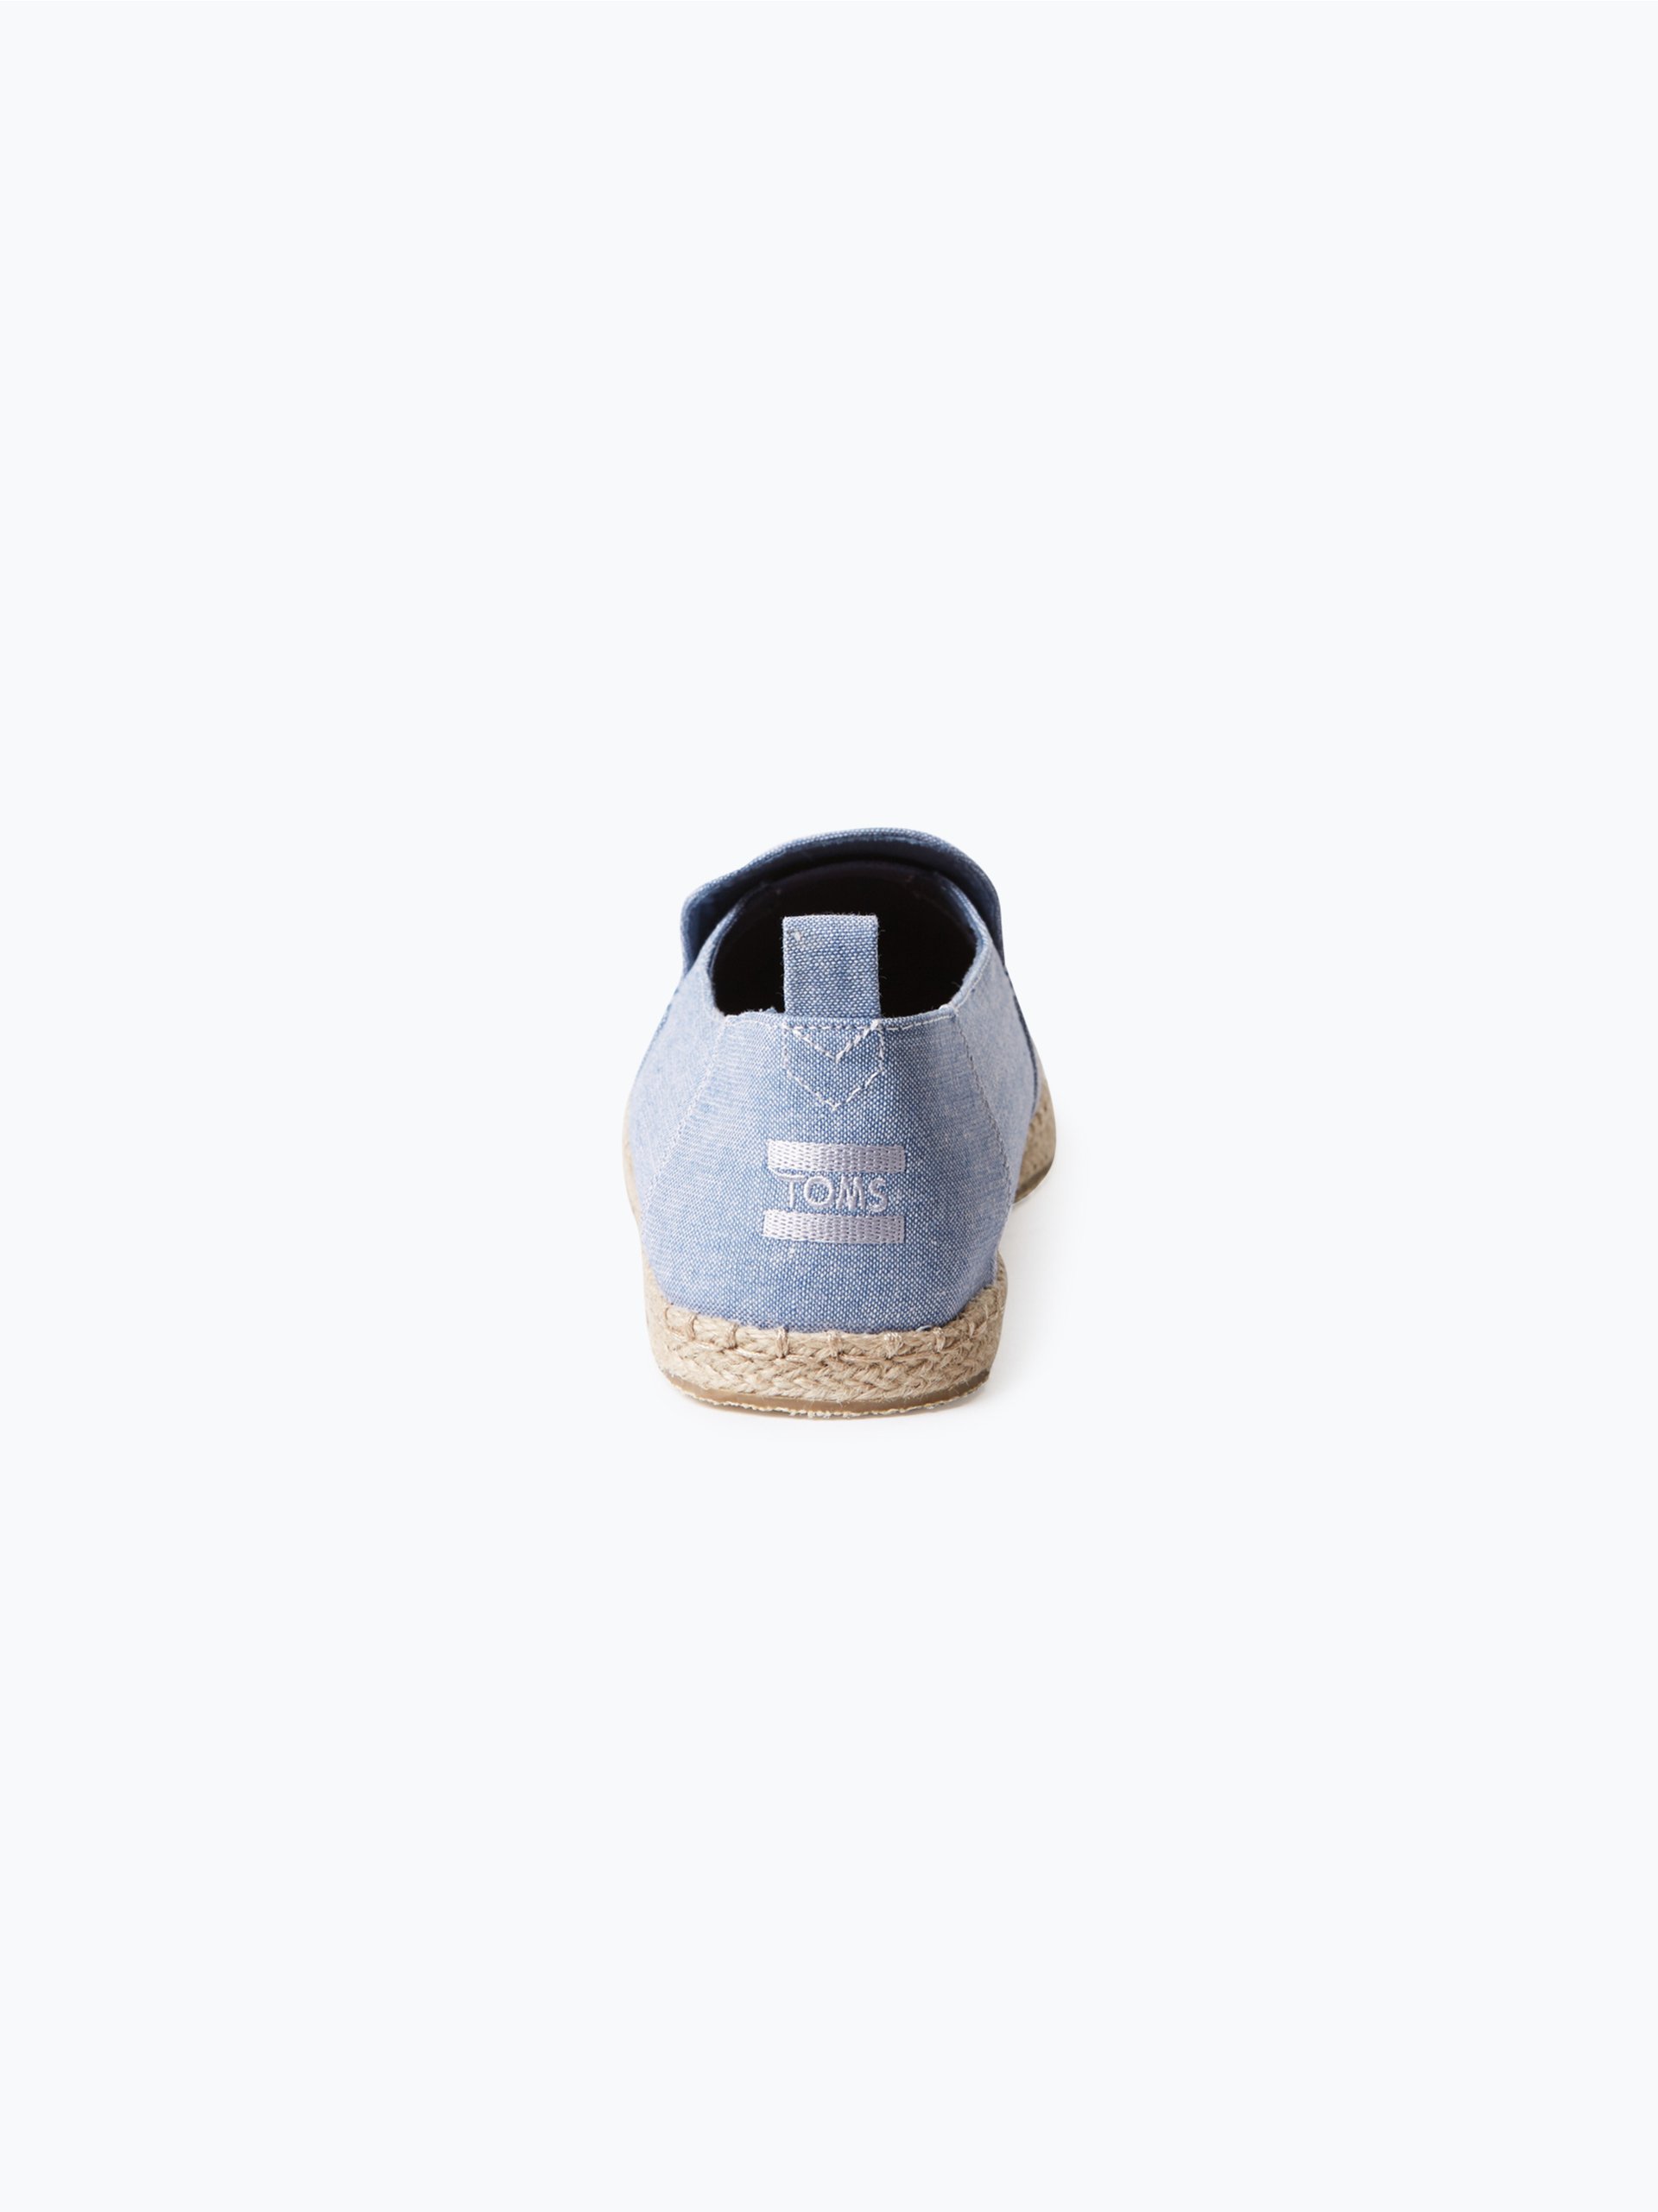 toms herren espadrilles blau uni online kaufen peek und cloppenburg de. Black Bedroom Furniture Sets. Home Design Ideas